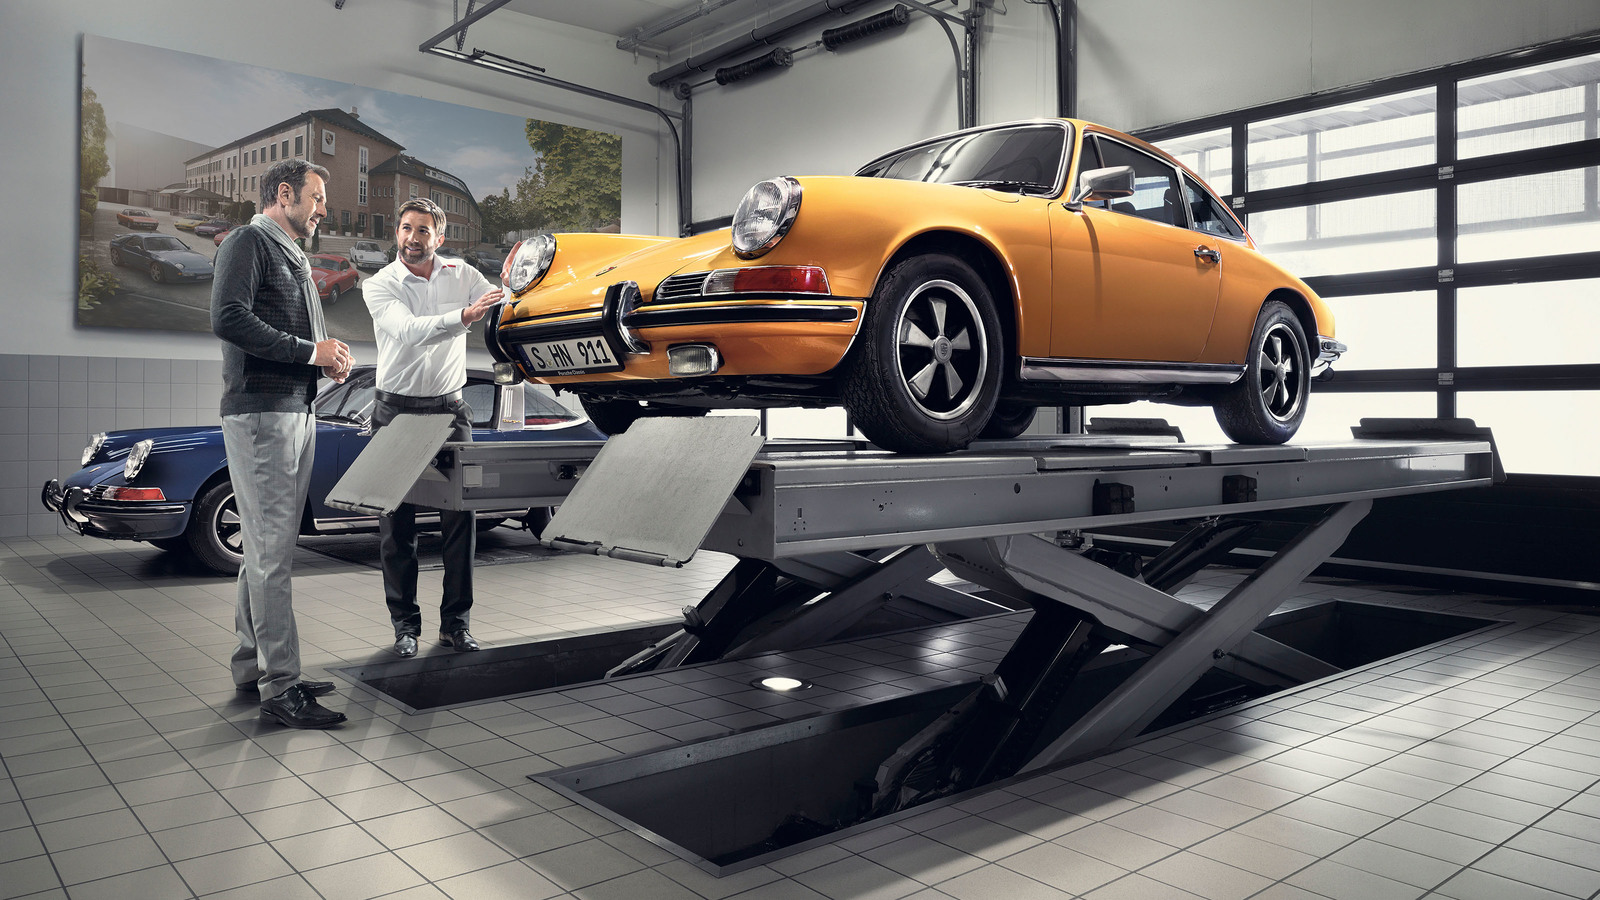 Porsche turns to 3D printing to keep old cars running thumbnail